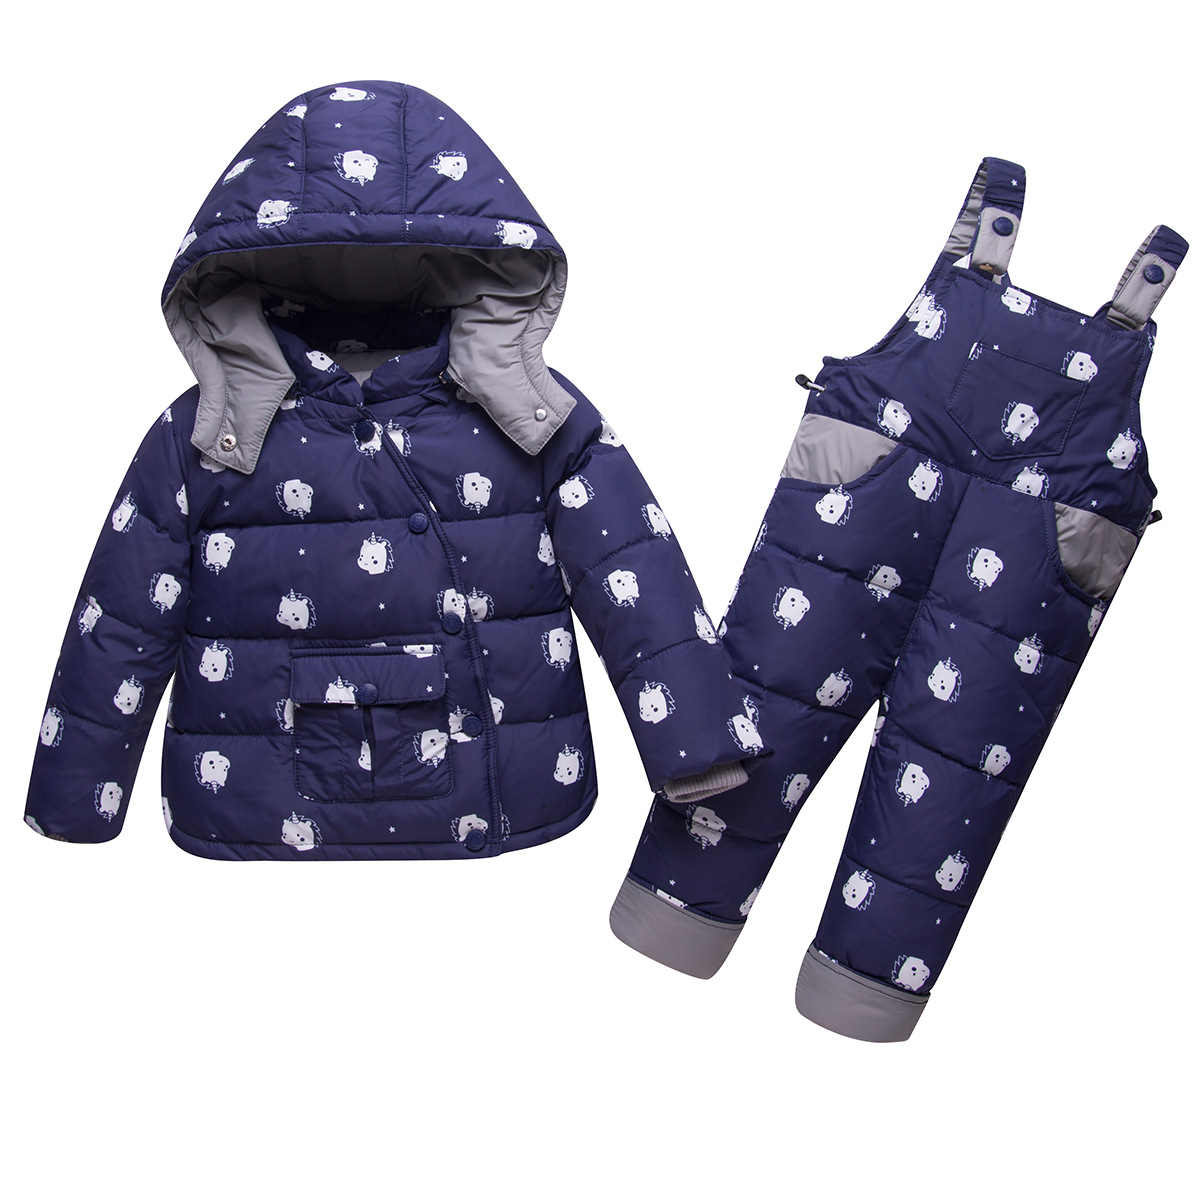 Infant Baby Girls Winter Coat Snowsuit Unicorn Outerwear Duck Down Toddler Girls Outfits Snow Wear Jumpsuit Hoodies Jacket new infant baby winter coat snowsuit duck down toddler girls winter outfits snow wear jumpsuit rabbit cartoon hoodies jacket set